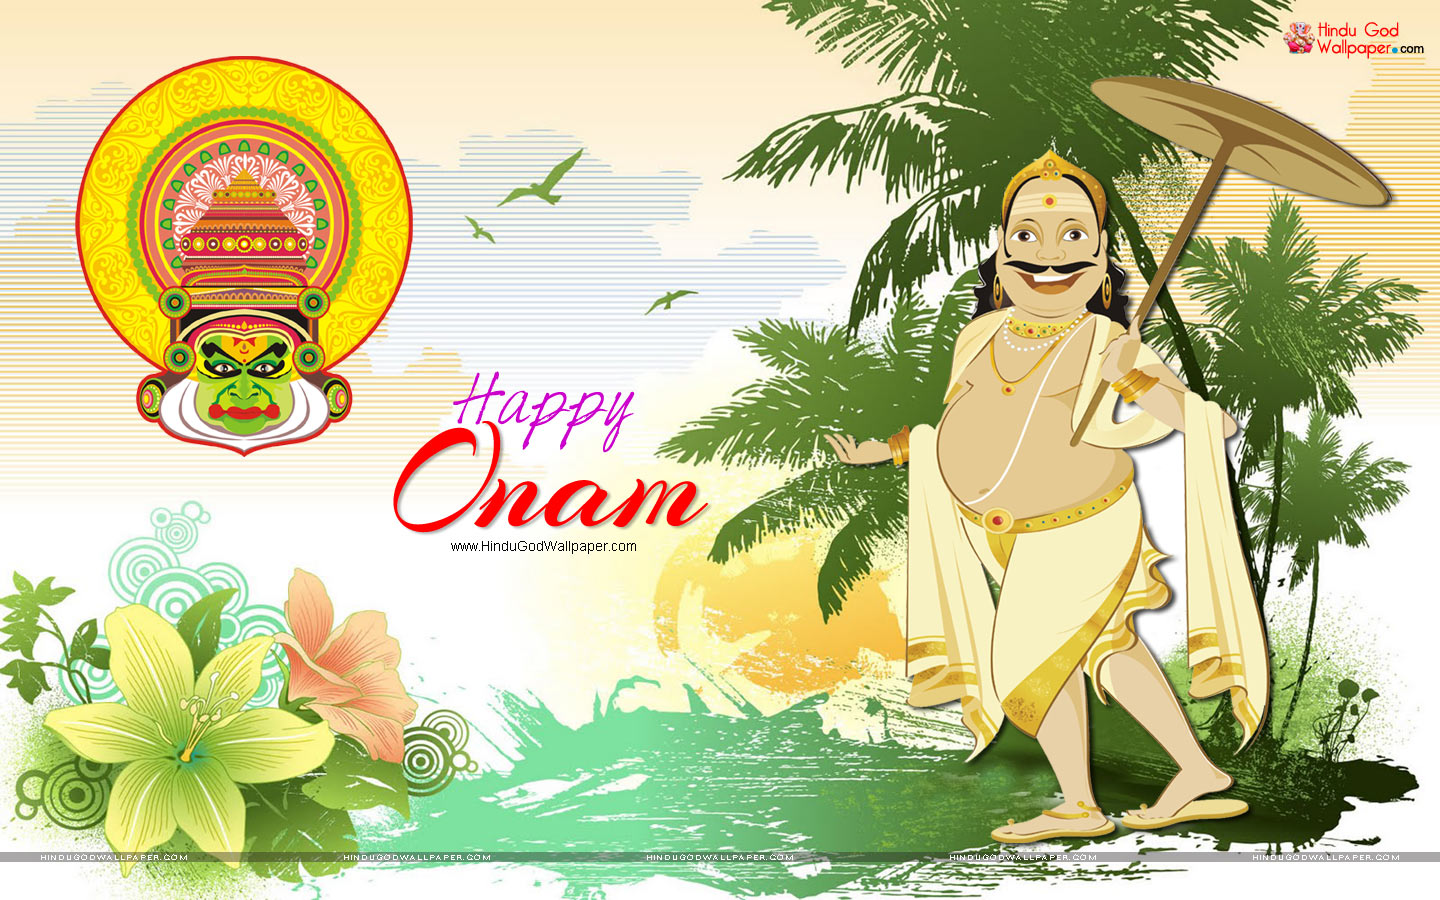 Onam Images Wallpapers Pics Photos 2020